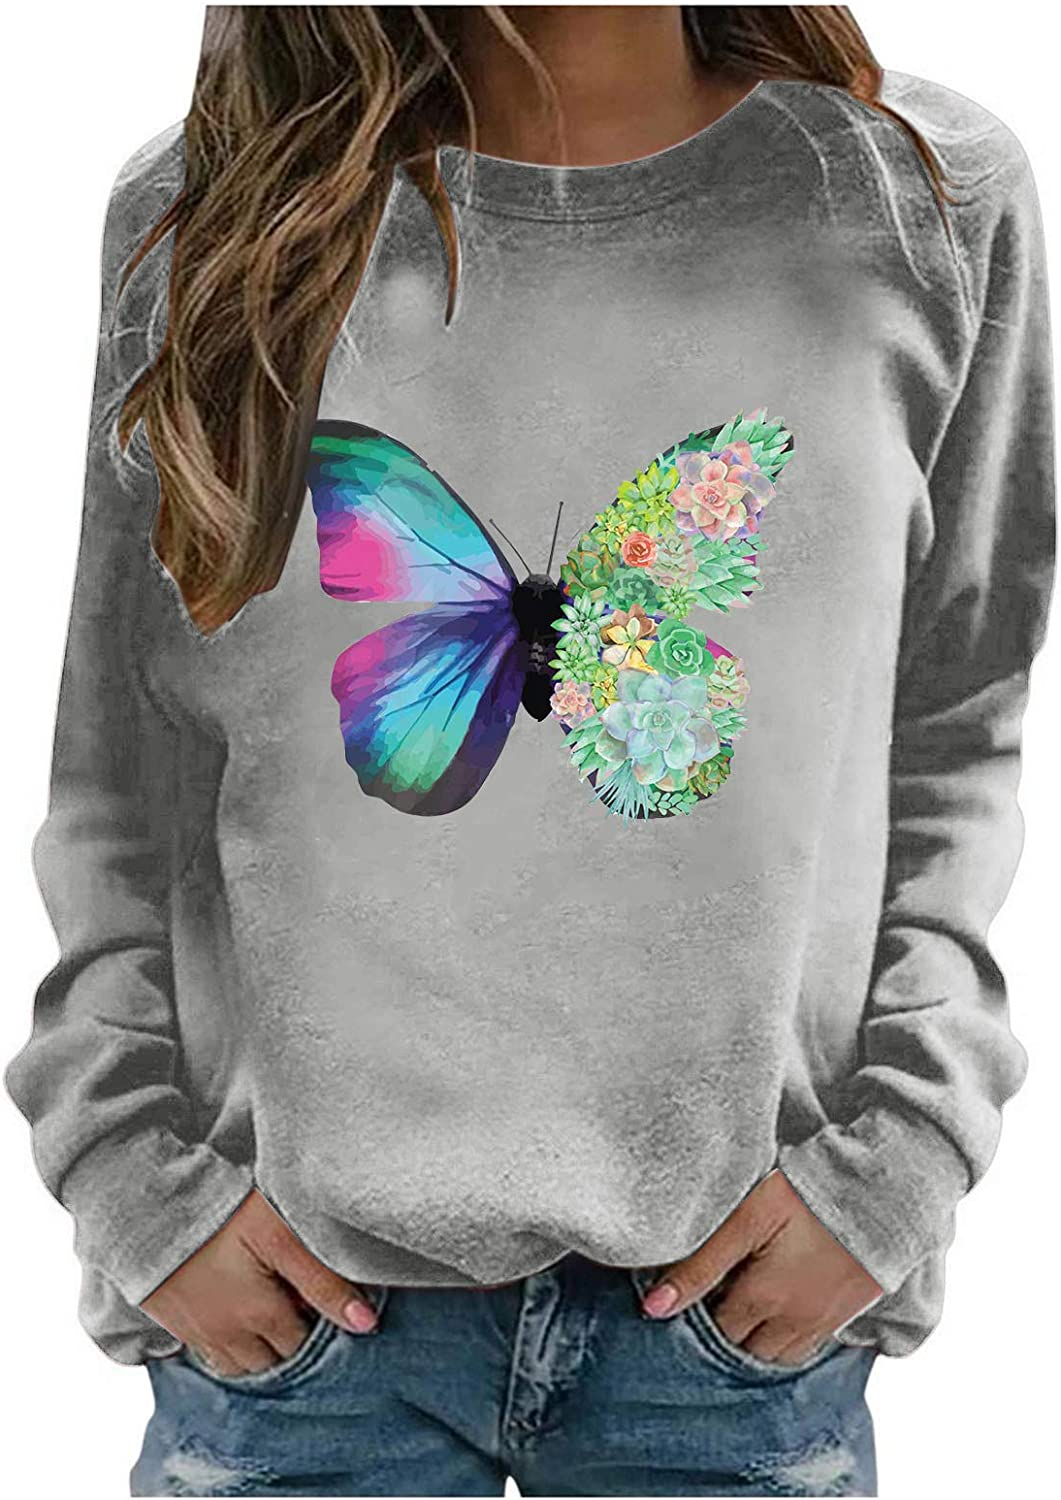 Crewneck Sweatshirts for Women Vintage Butterfly Print Fashion Casual Long Sleeve Pullover Sweatshirt Tops Blouse